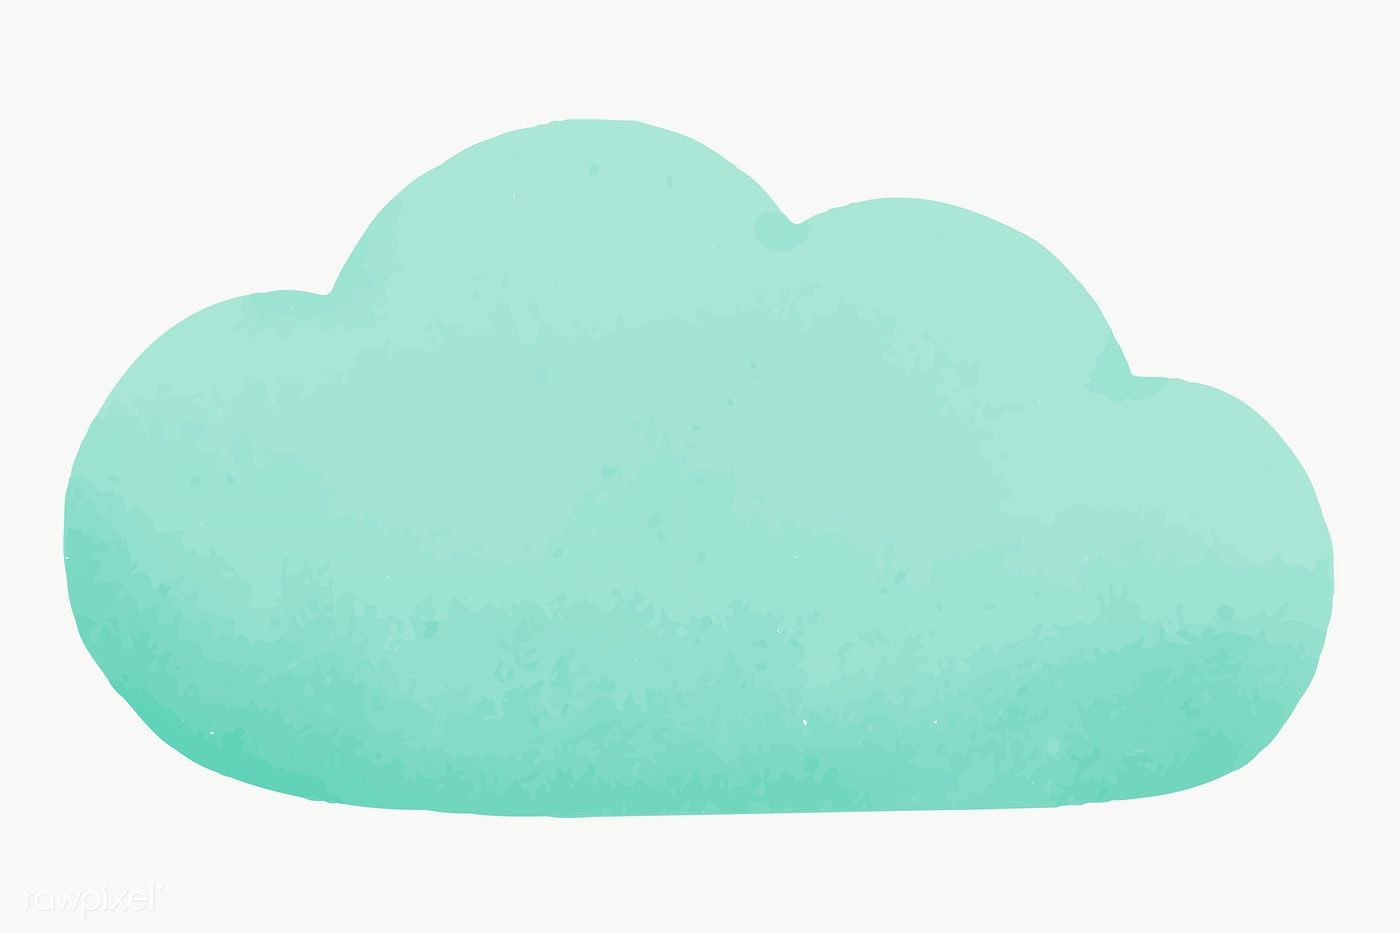 Download Premium Png Of Blue Cloud Computing Social Media Transparent Png Social Media Icons Vector Clouds Blue Clouds